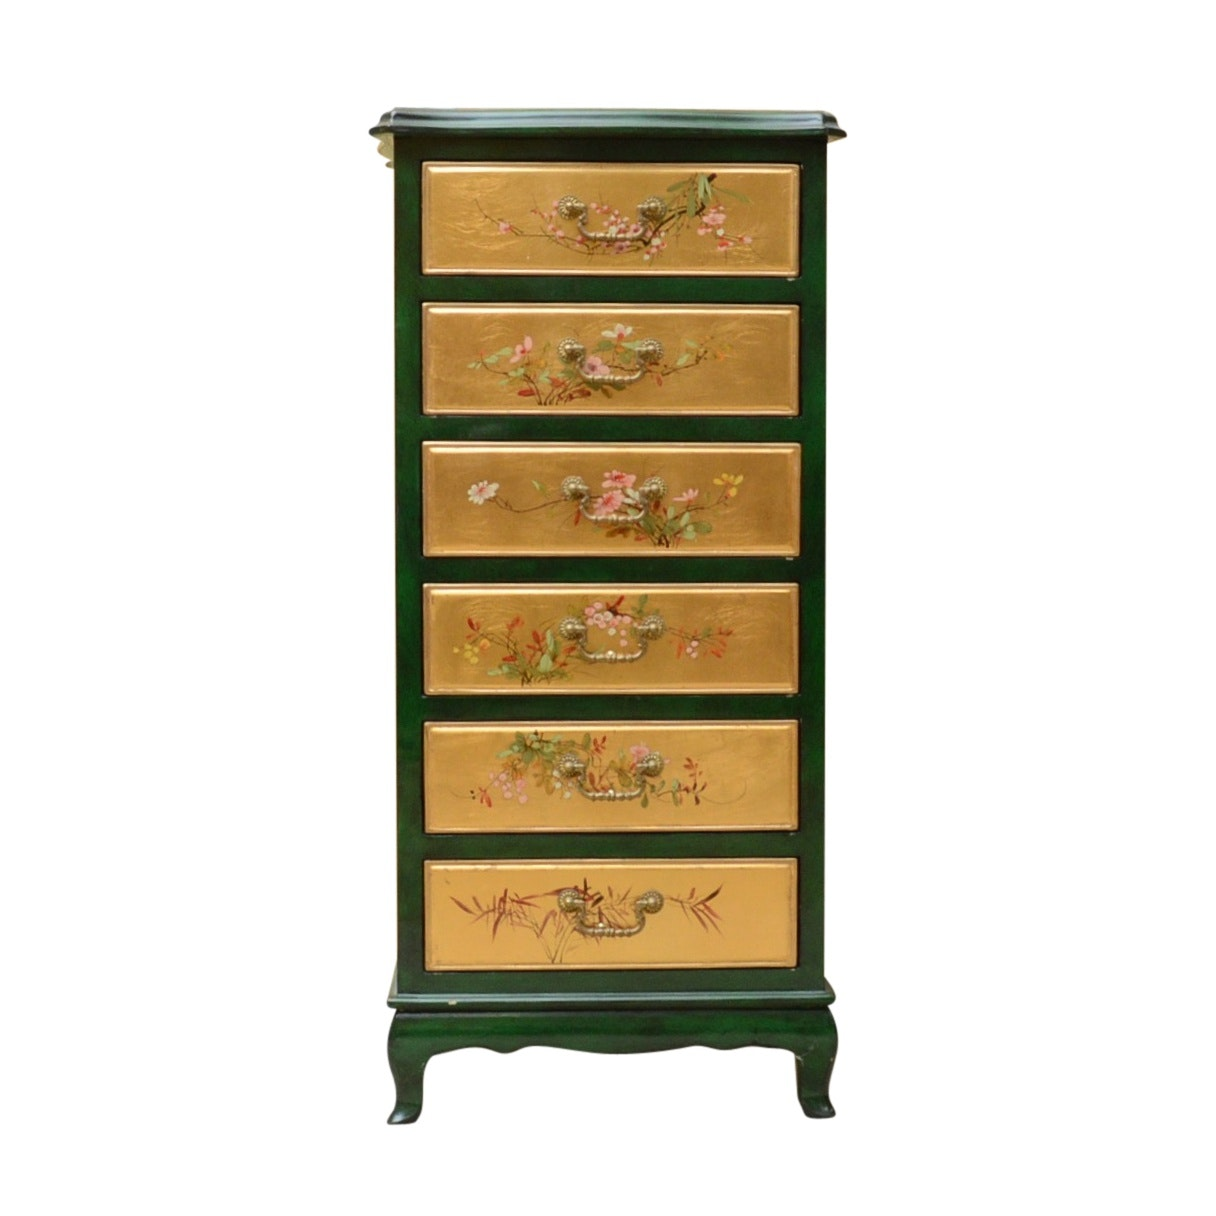 Japanese Hand-Painted Lingerie Chest